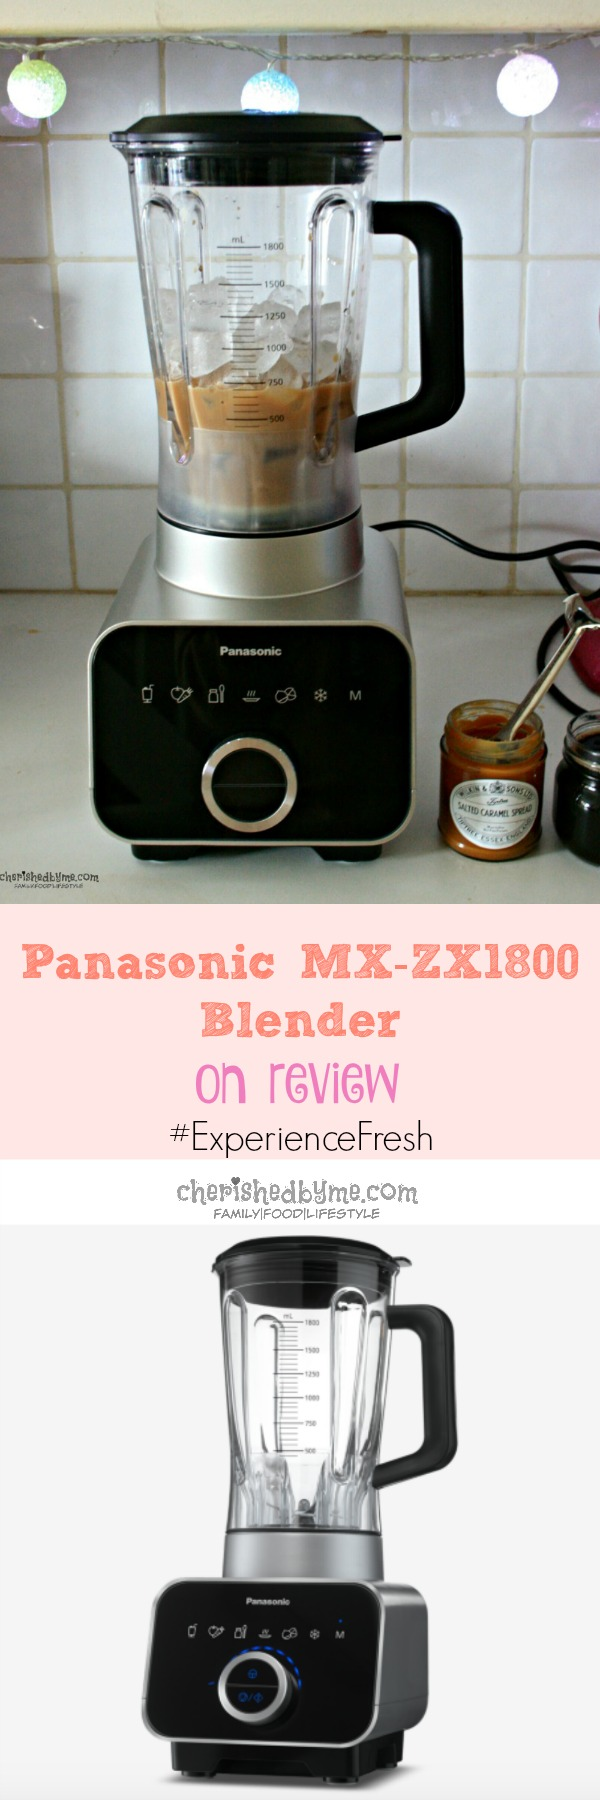 Panasonic MX-ZX1800 Blender